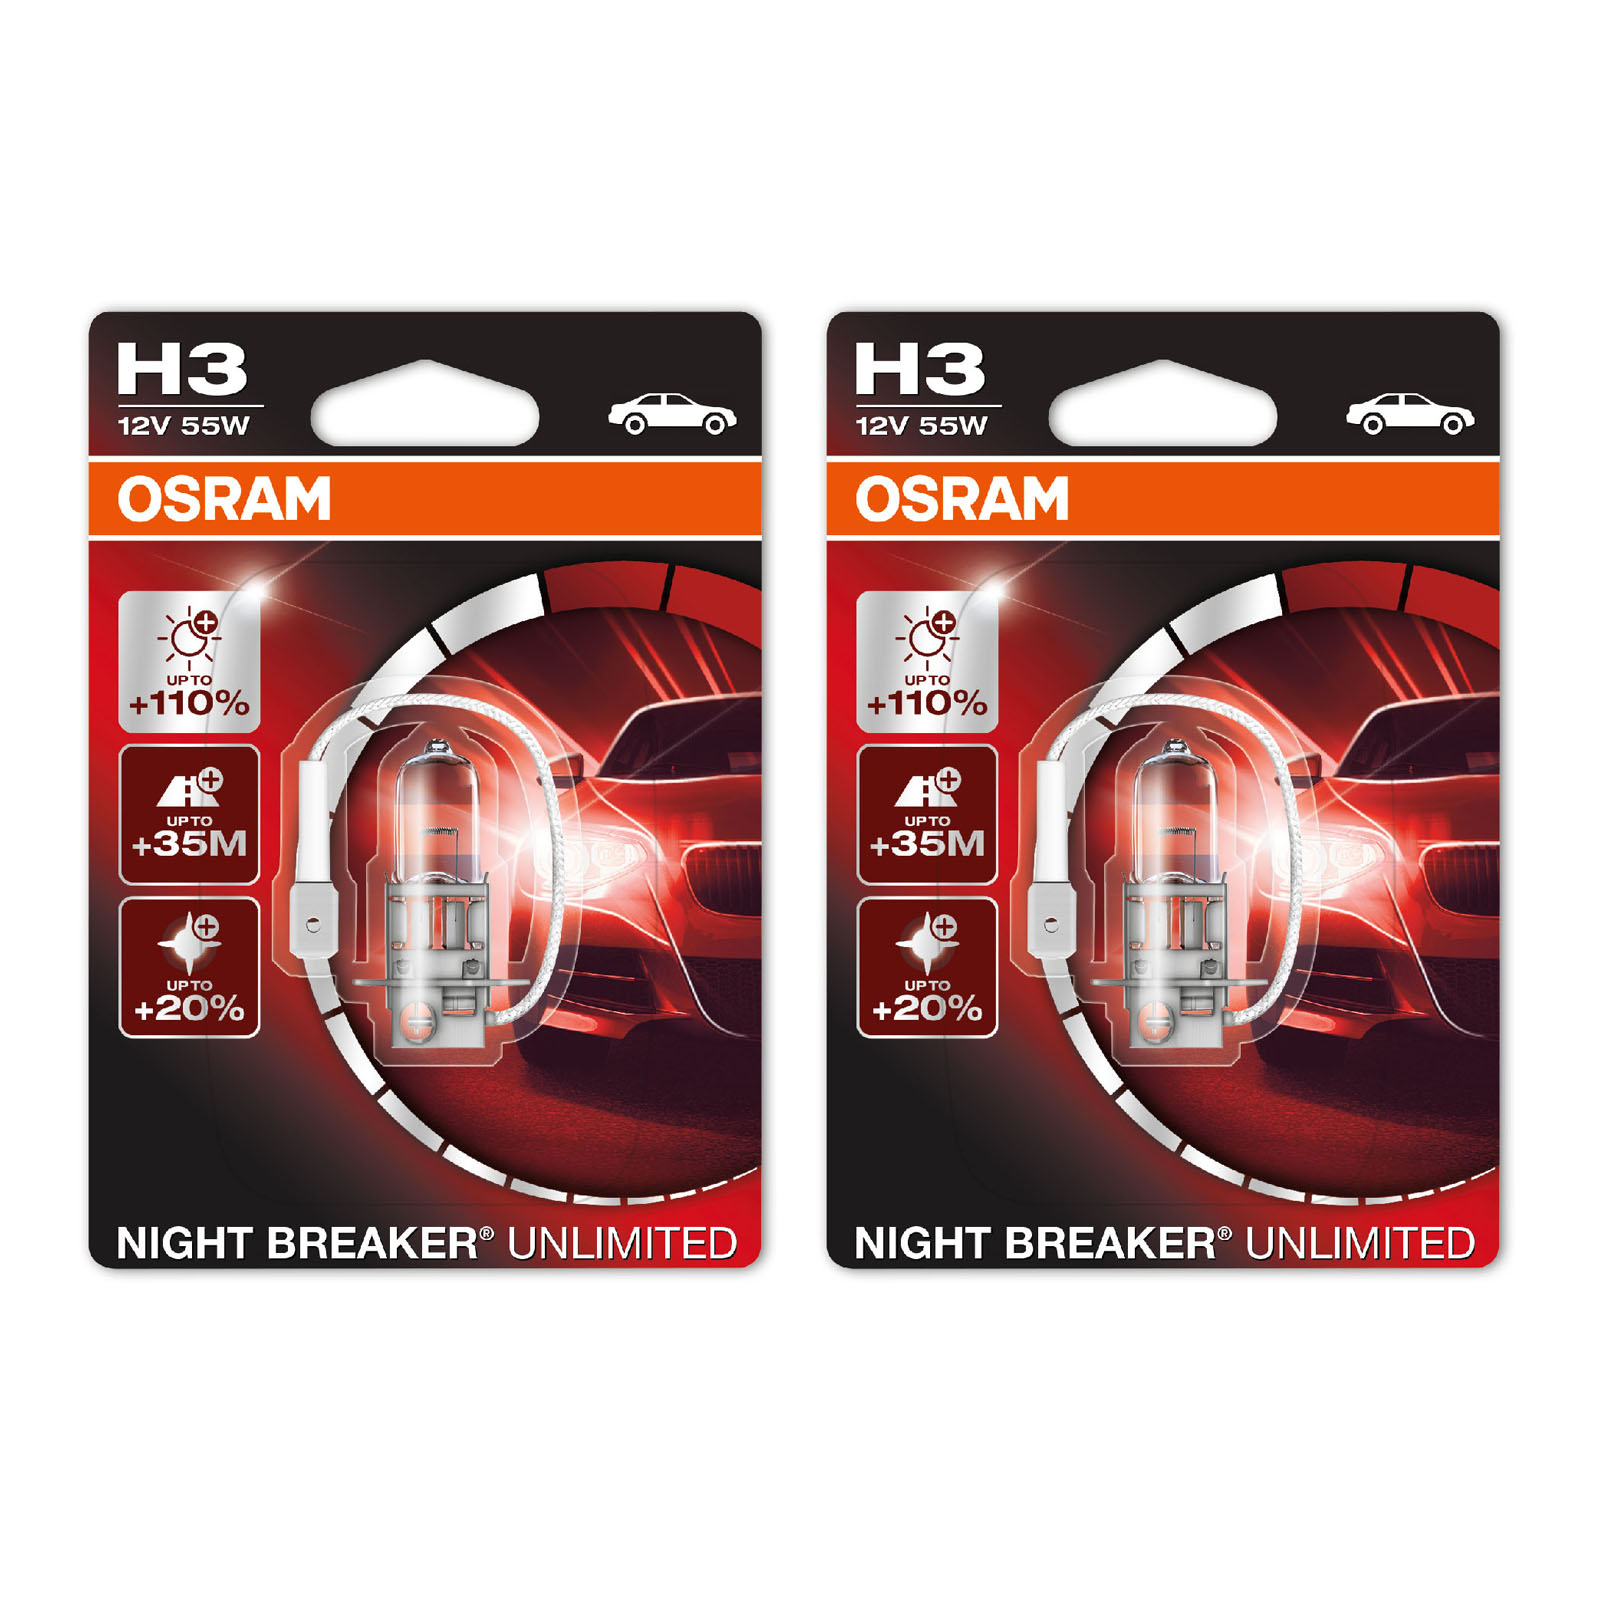 2x proton satria genuine osram night breaker unlimited low beam headlight bulbs. Black Bedroom Furniture Sets. Home Design Ideas